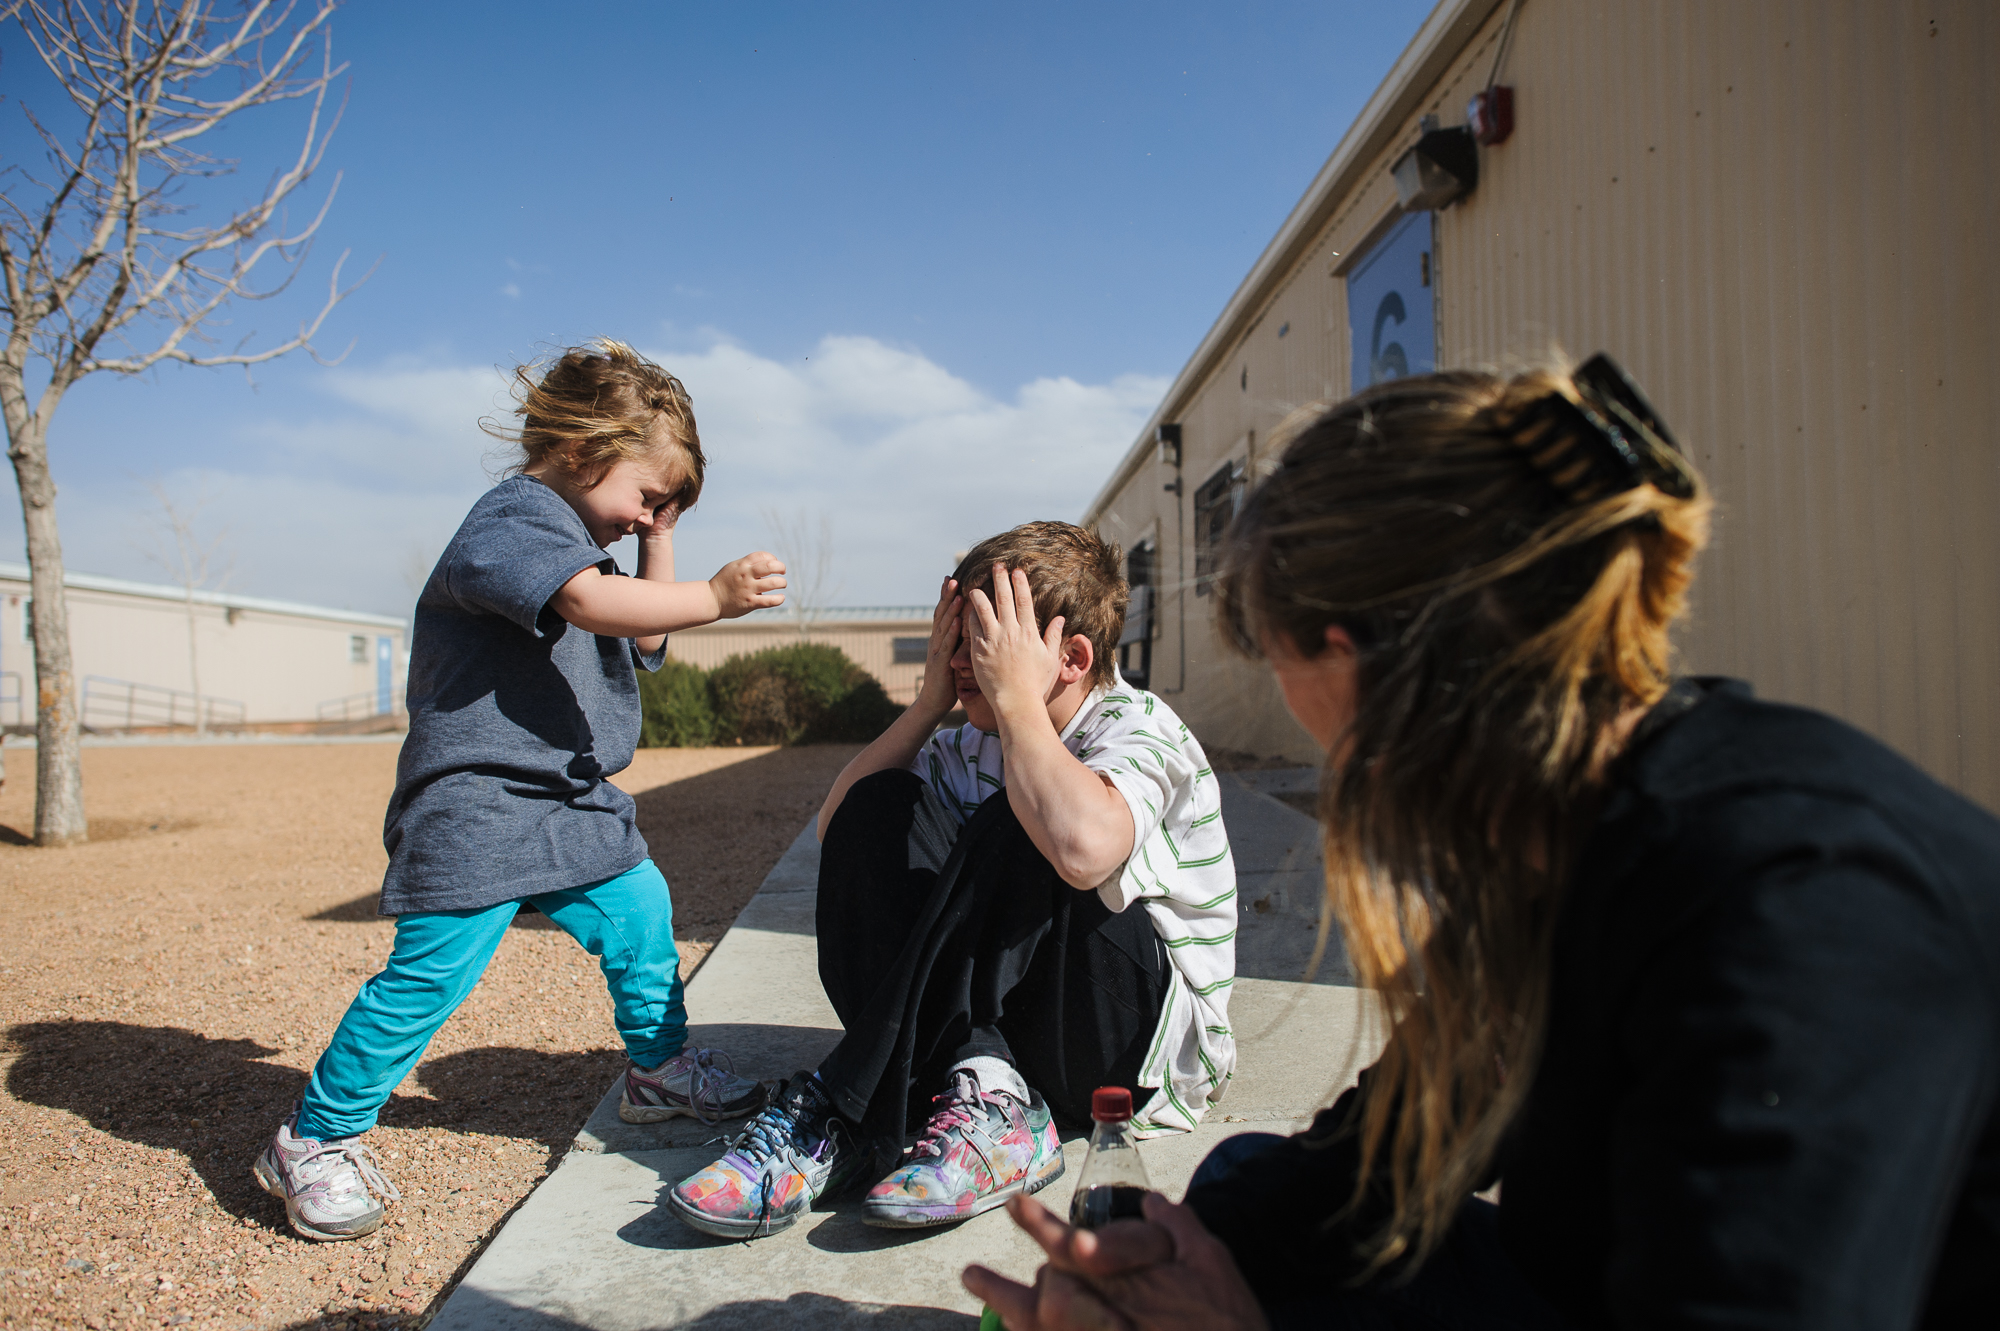 Vinny, age 13, plays a game with his sister, Elycia, age 4, outside the counseling office where he will be evaluated for post traumatic stress, 2012.